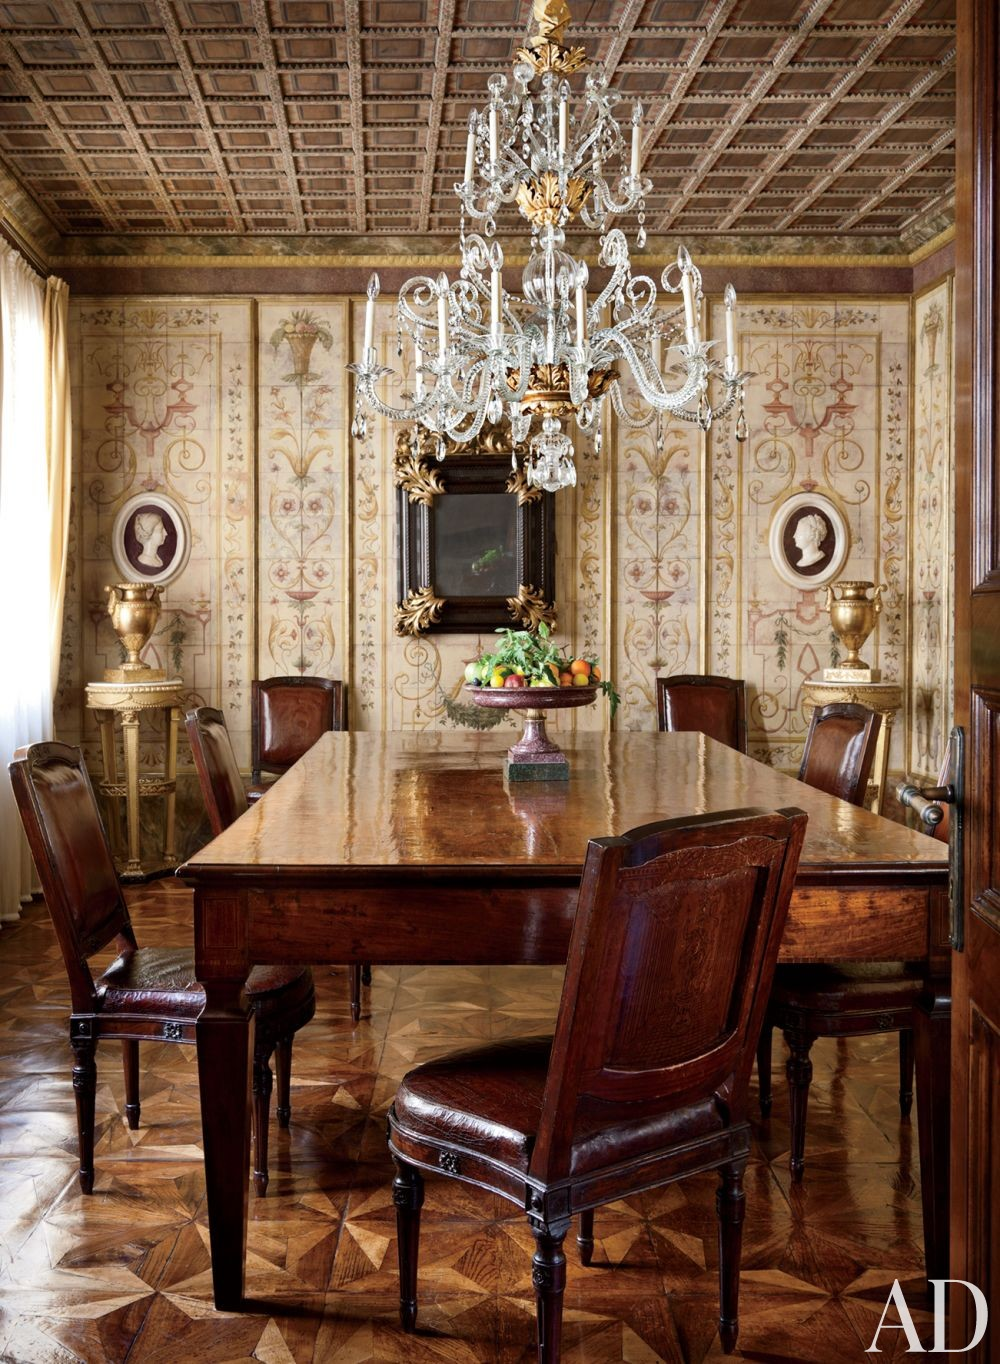 Traditional Dining Room by Studio Peregalli in Oderzo, Italy